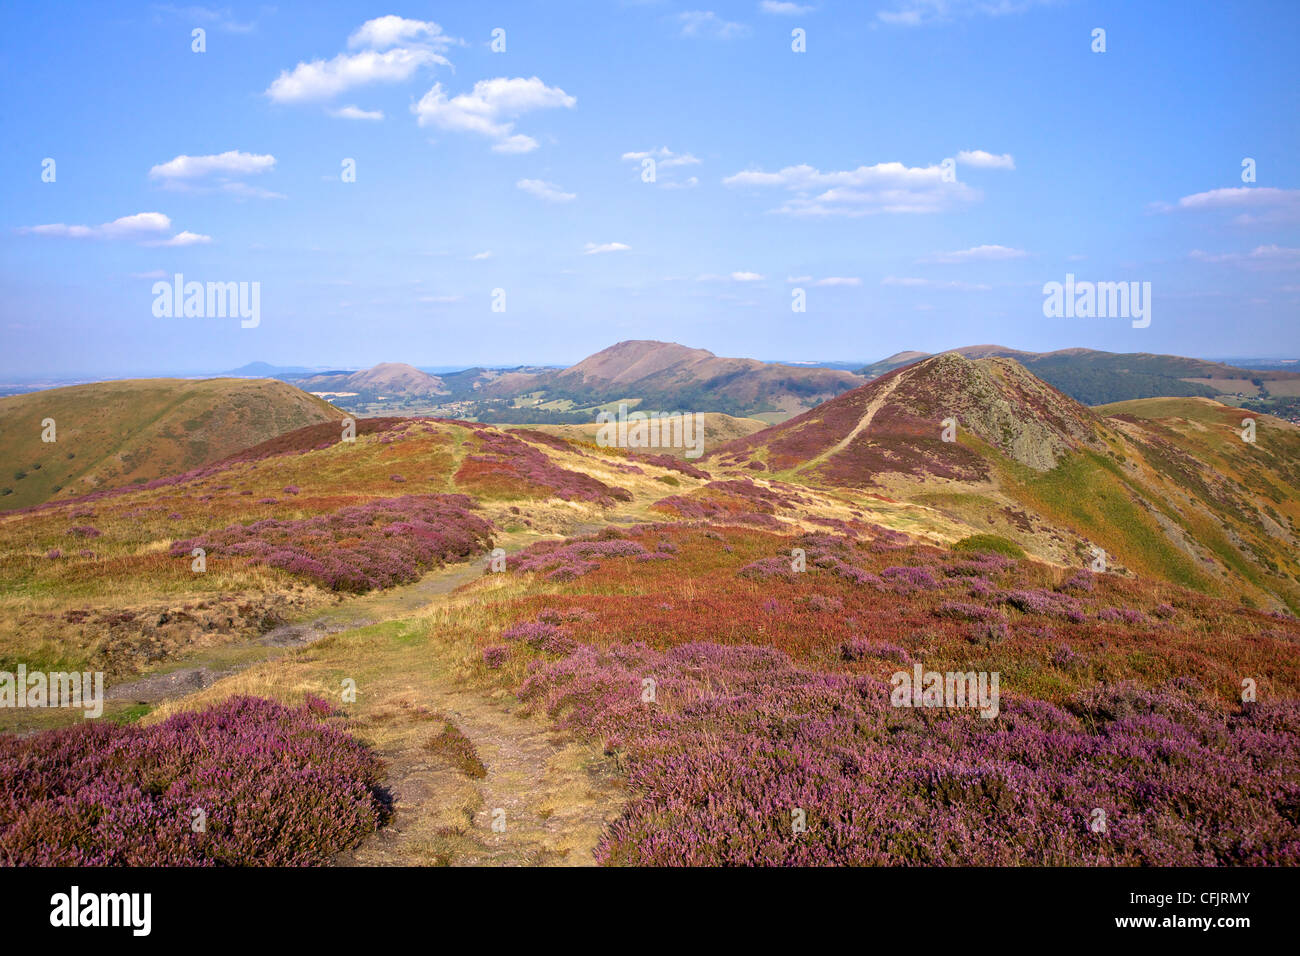 Views over Caradoc, Lawley and the Wrekin from the Long Mynd, Church Stretton Hills, Shropshire, England, United - Stock Image